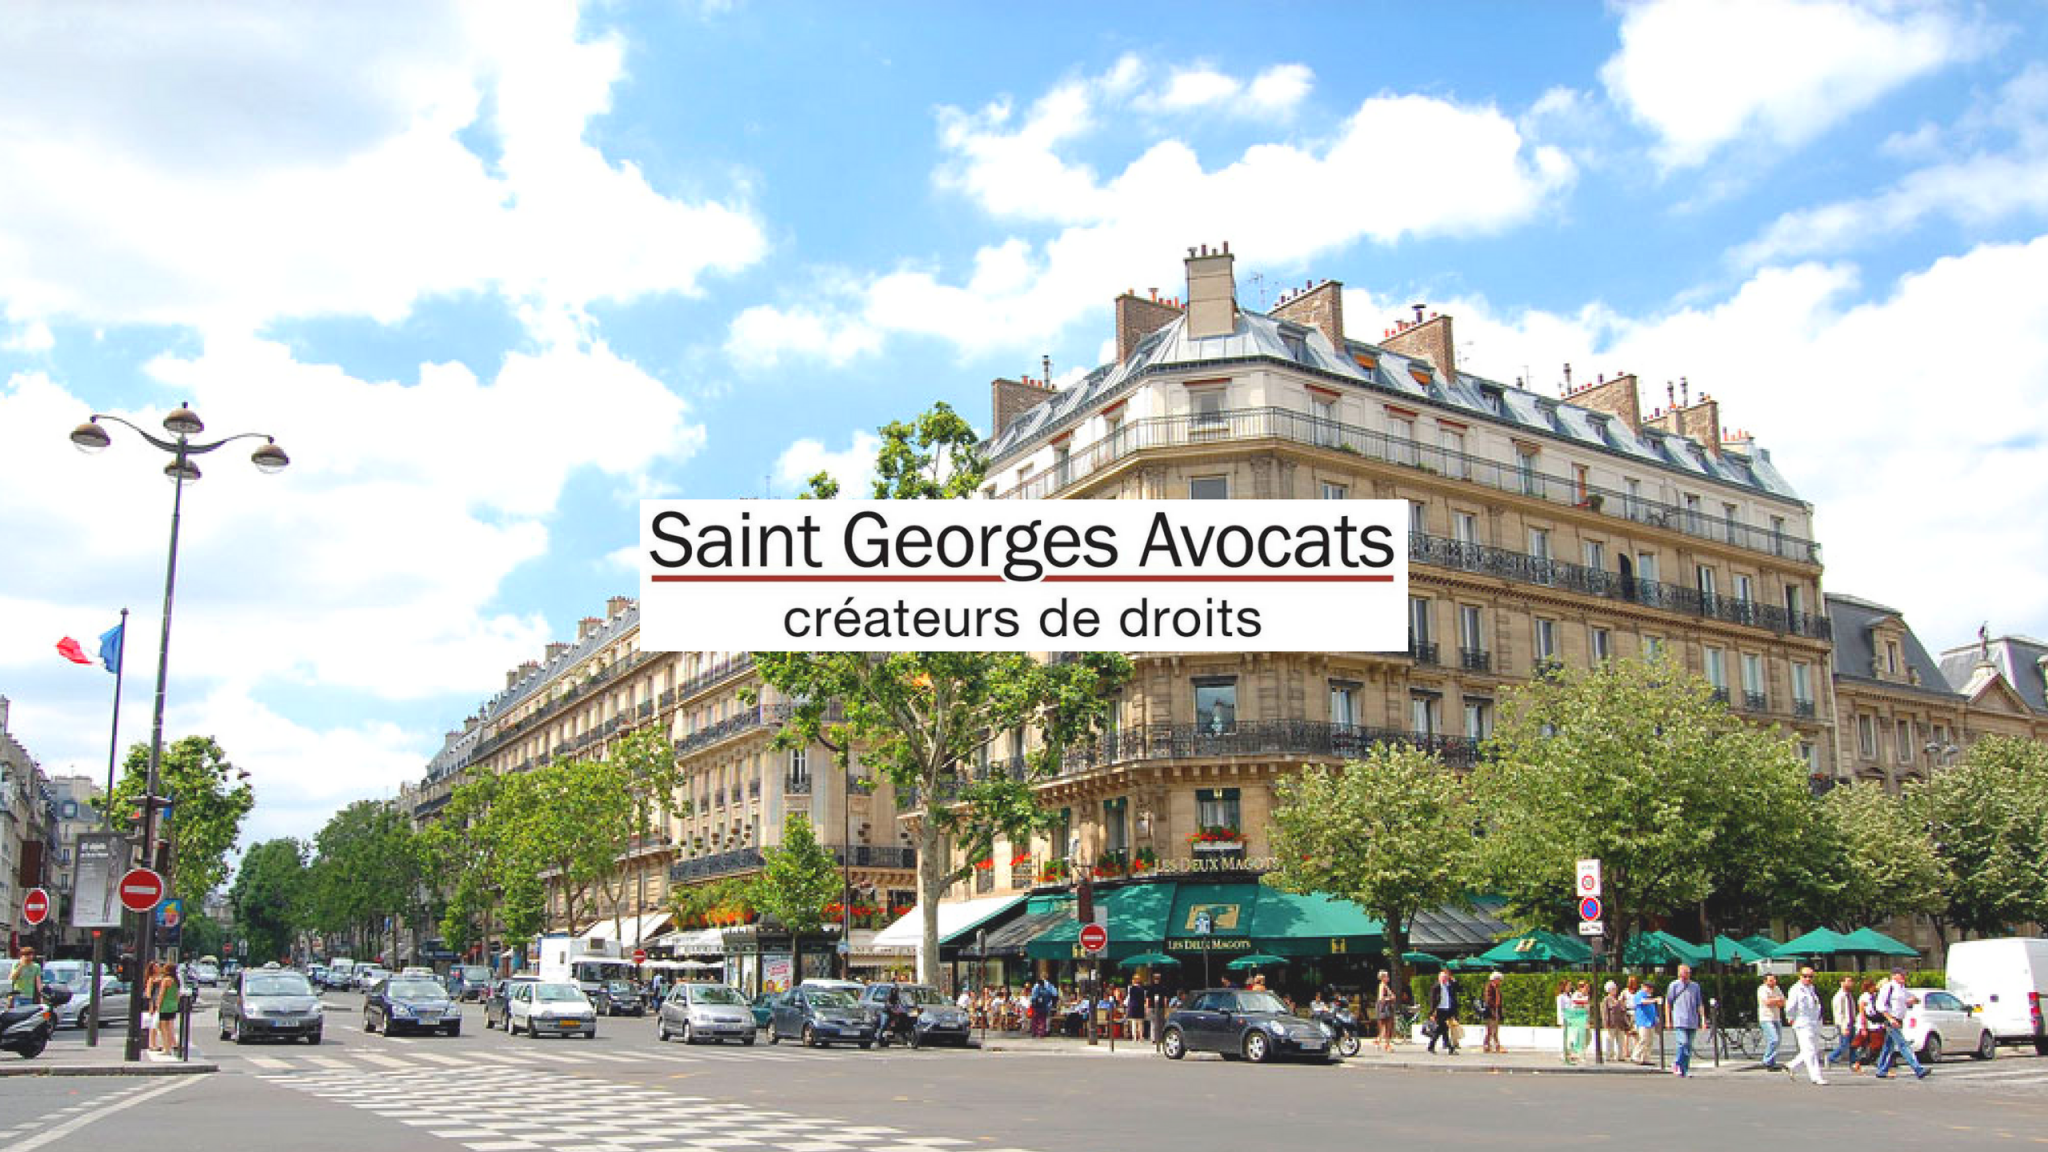 Saint Georges Avocats Best Legal Law Firms in the World UpSlide